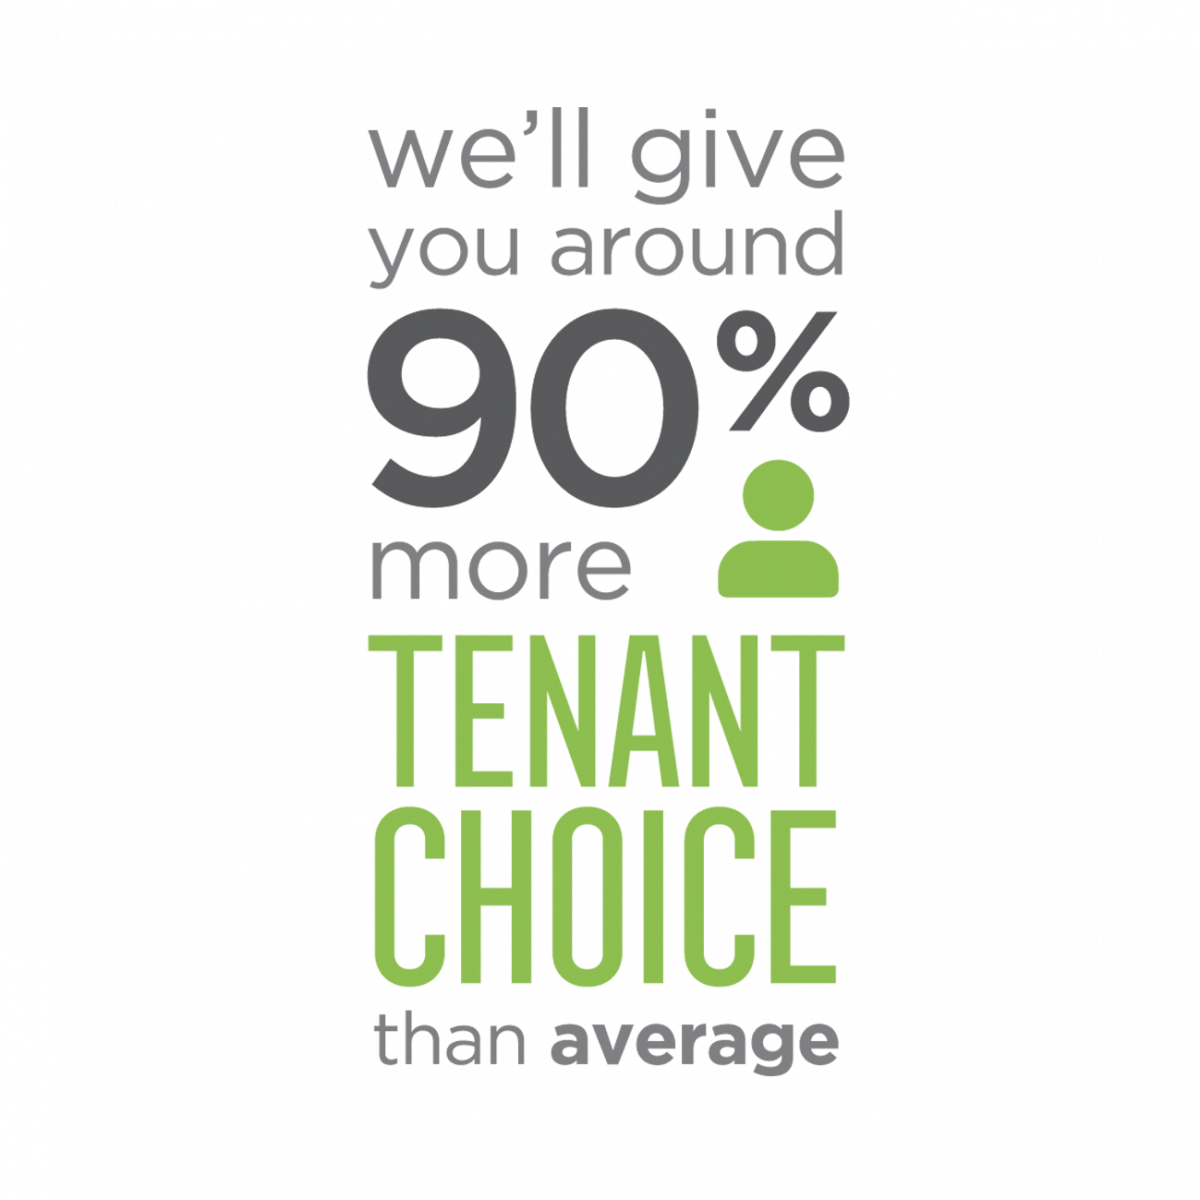 90% More Tenant Choice